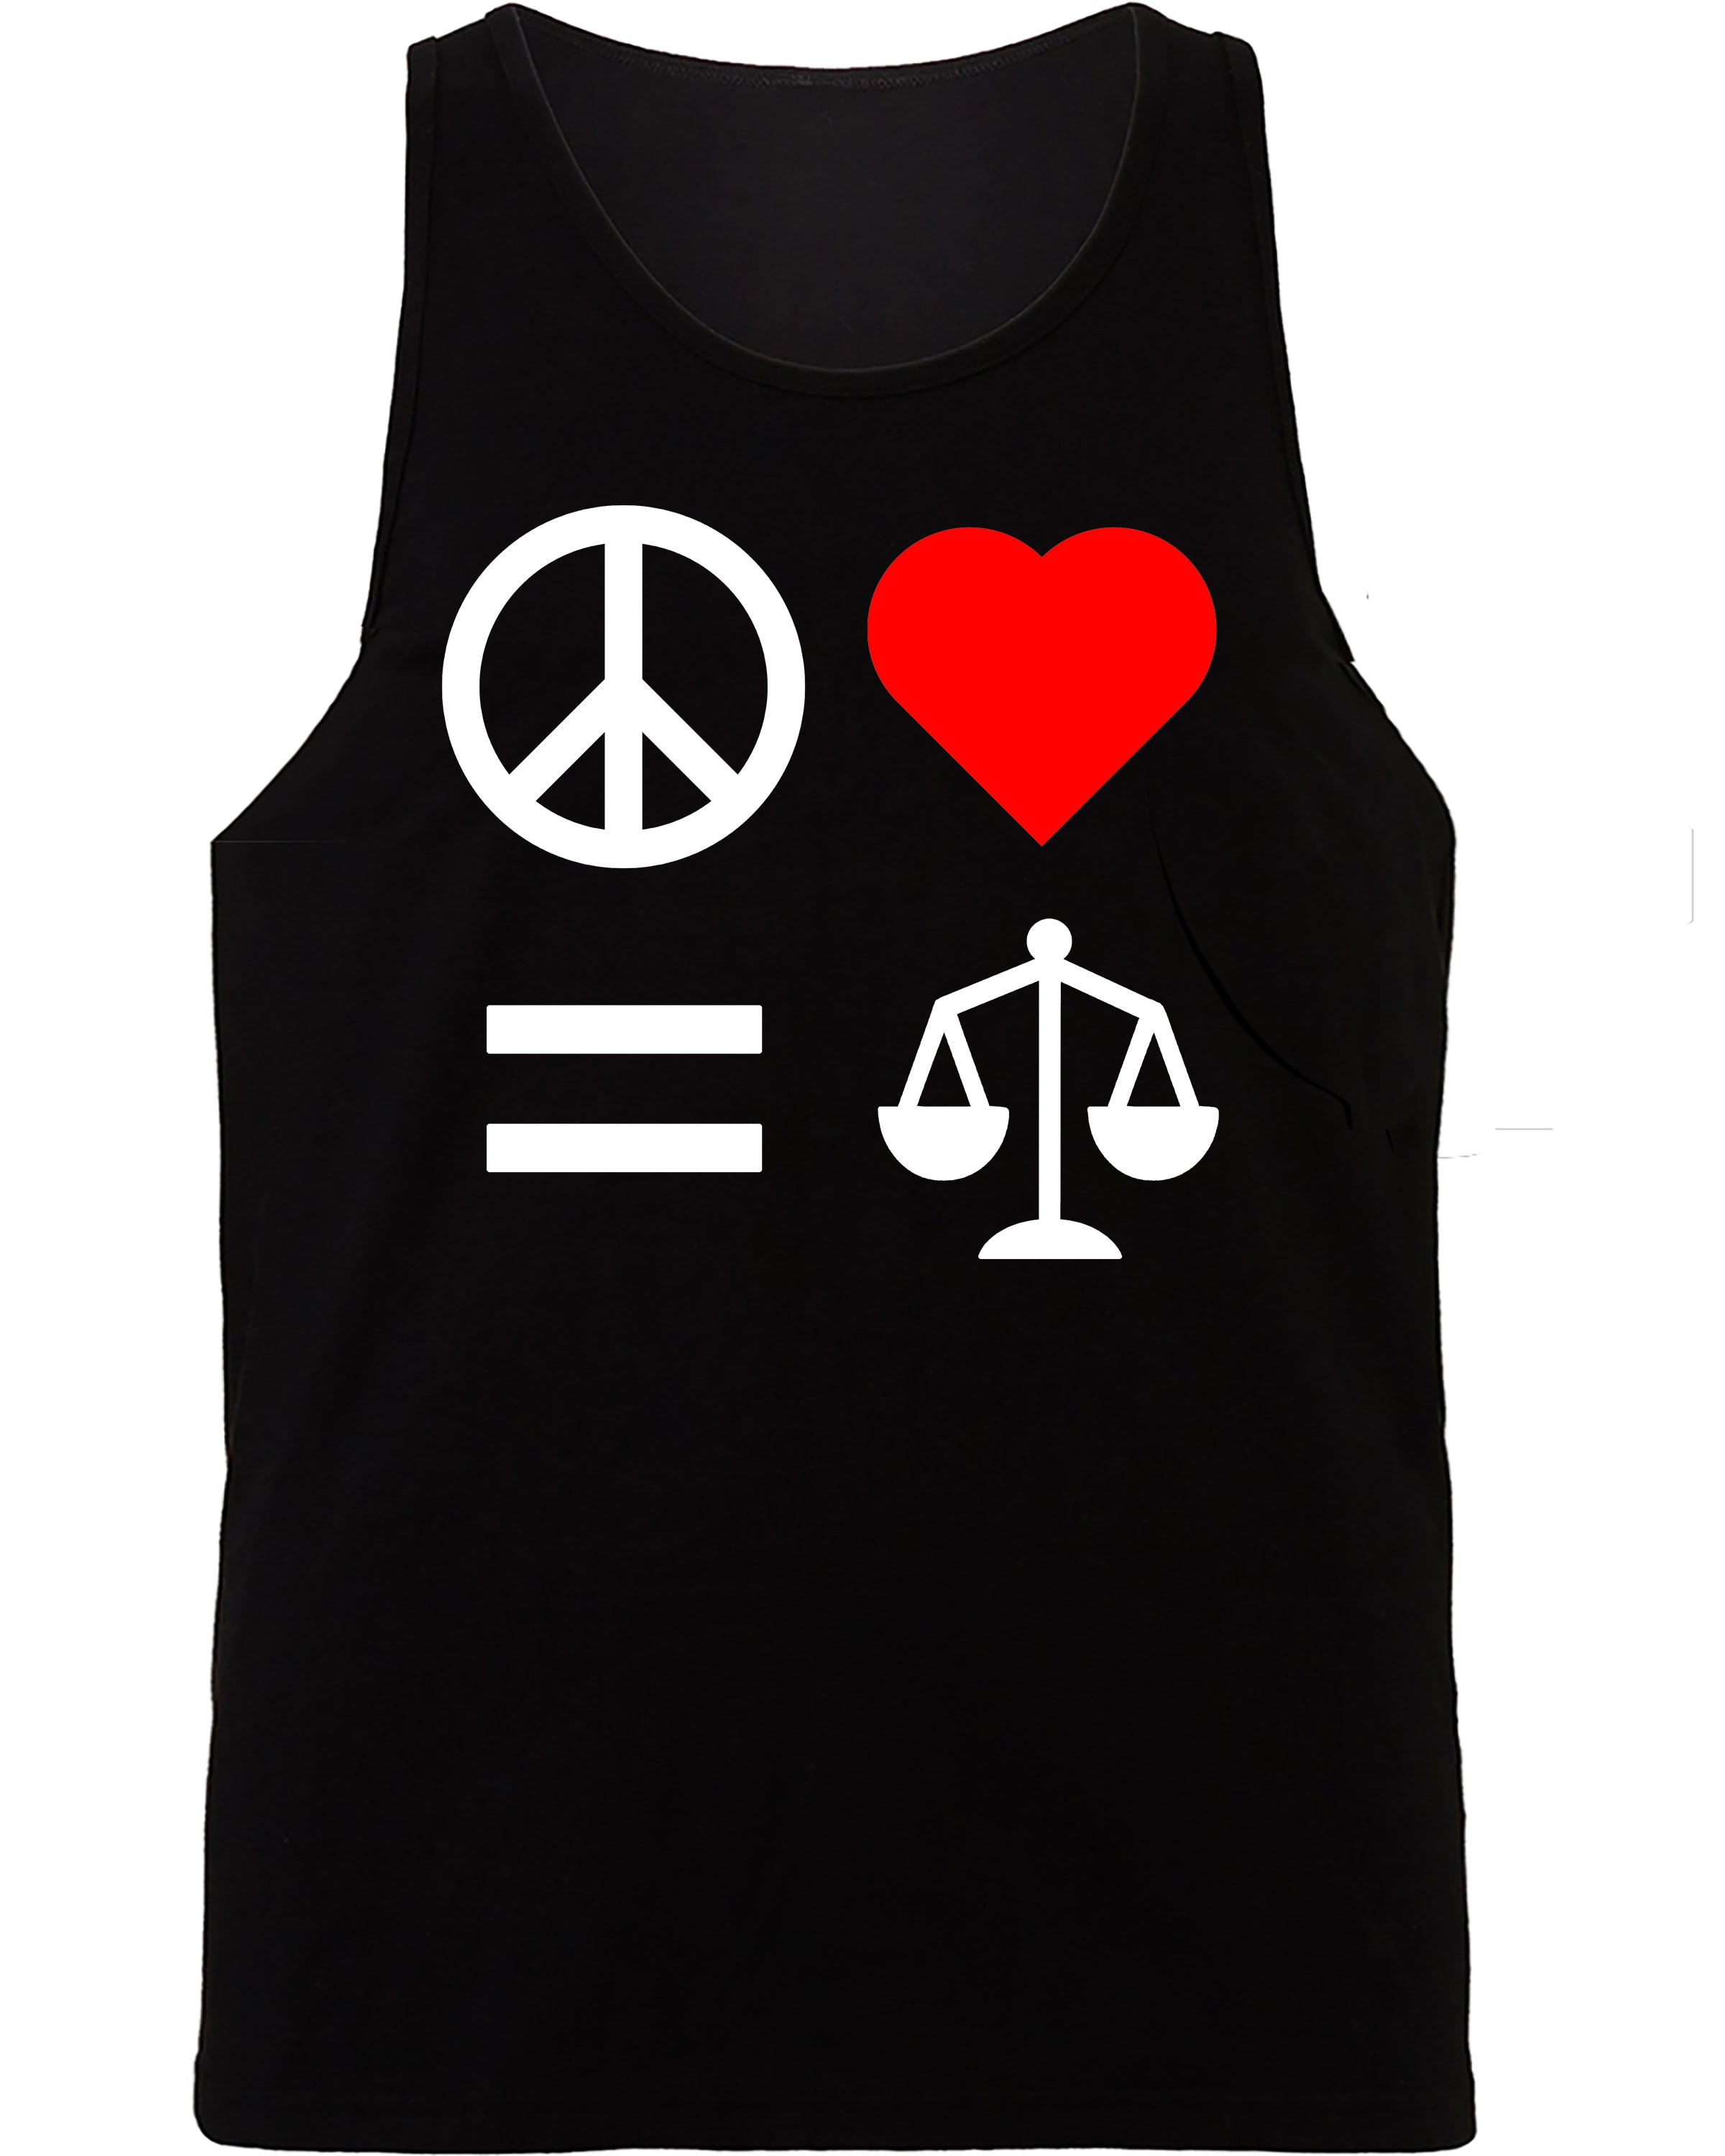 Peace Love Equality Justice Tank